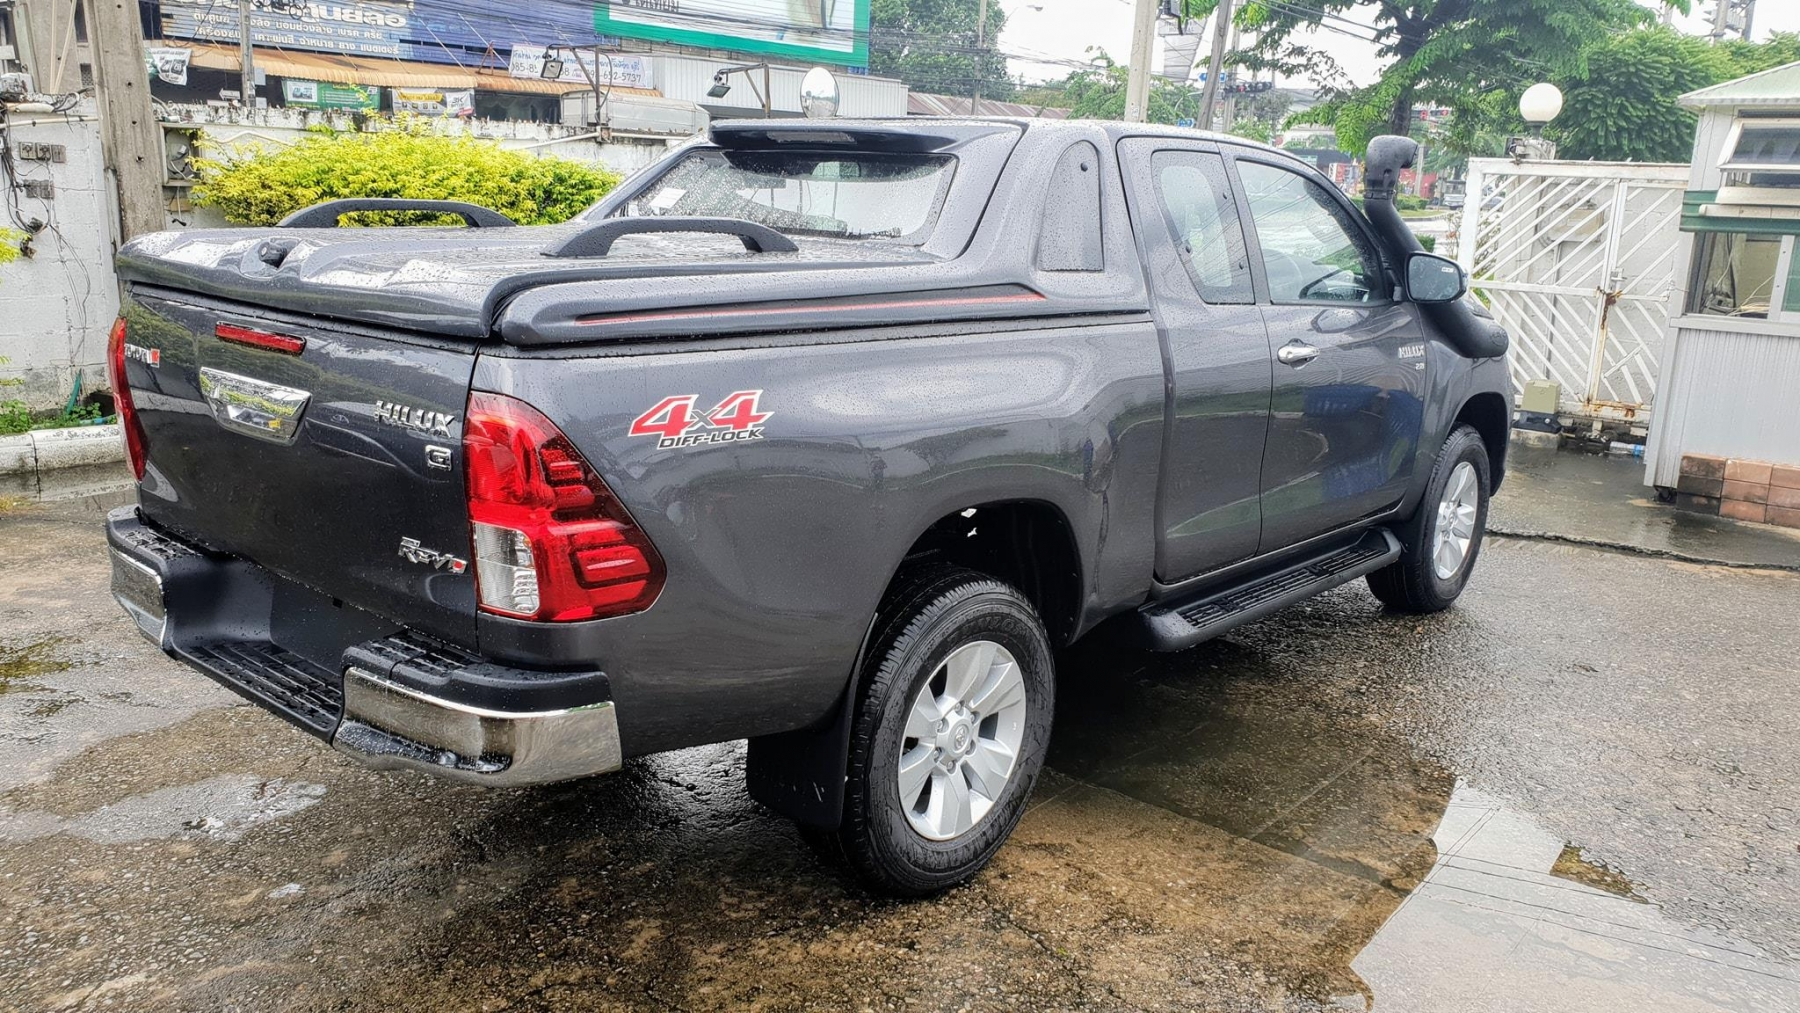 Thailand Toyota Revo 4x4 Smart King Space Extra Cab Exporter For Sale Best Price At Mark Motors